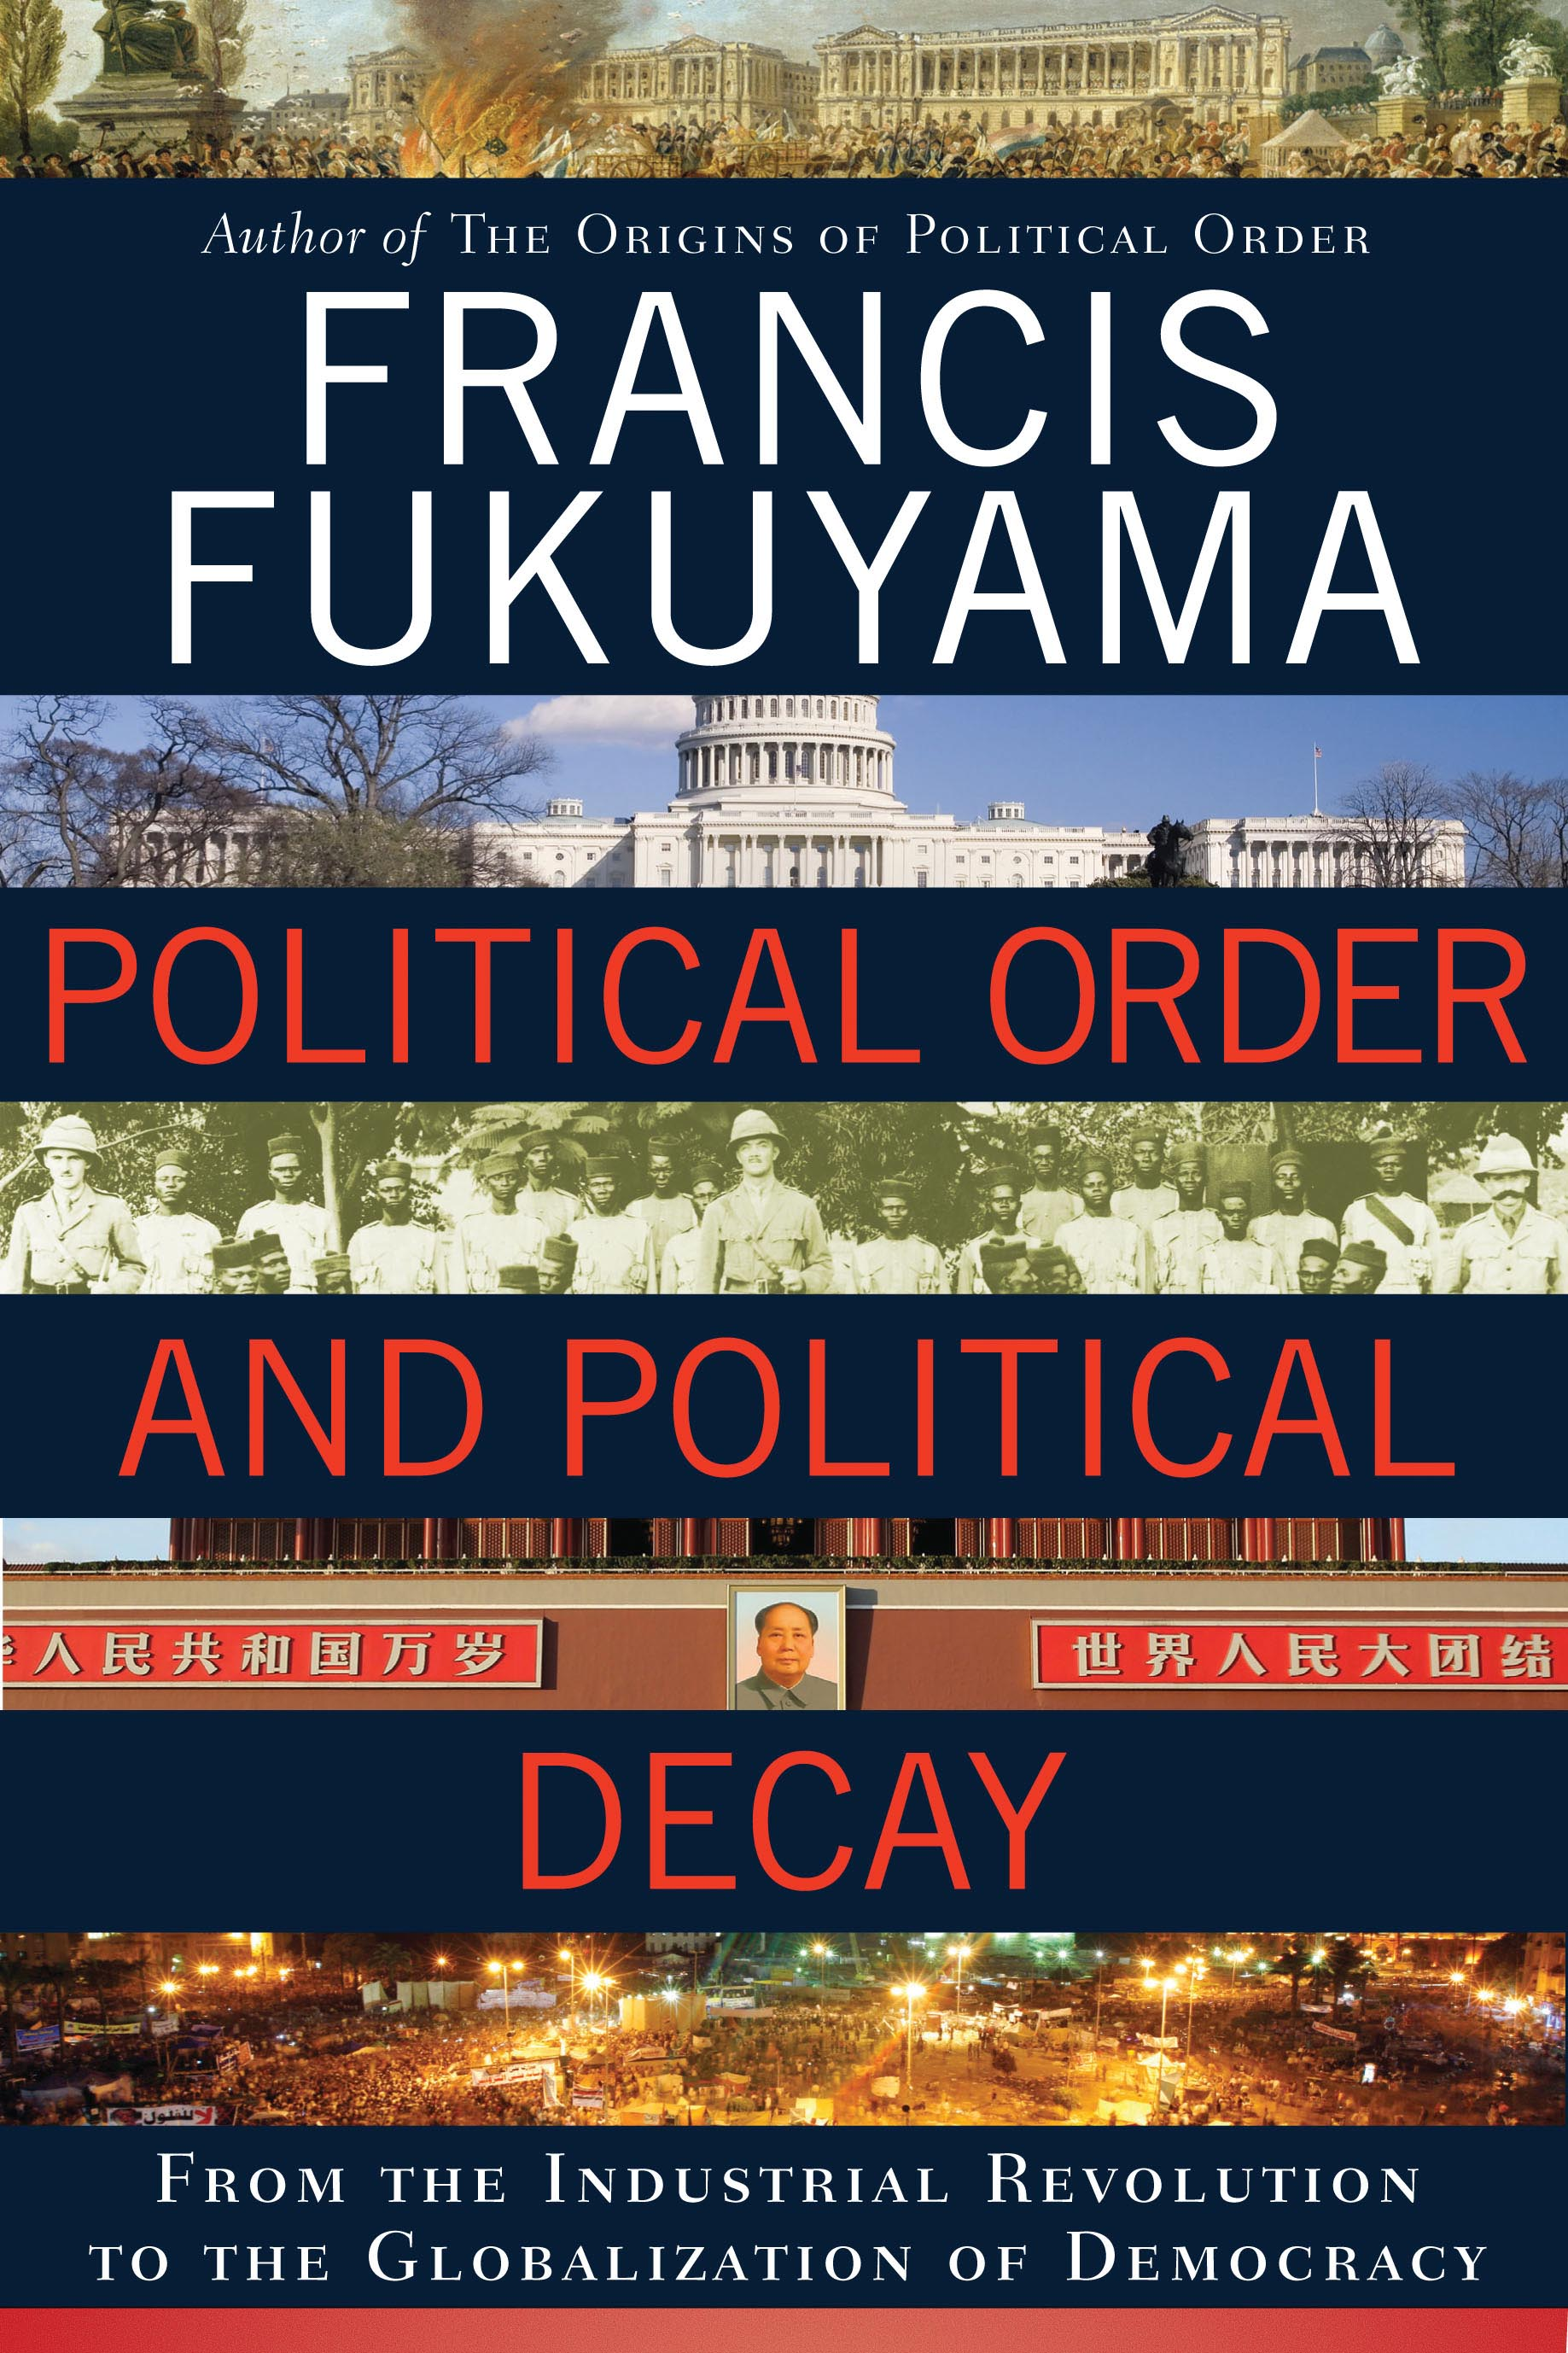 What China Cut from Francis Fukuyama's Latest Book